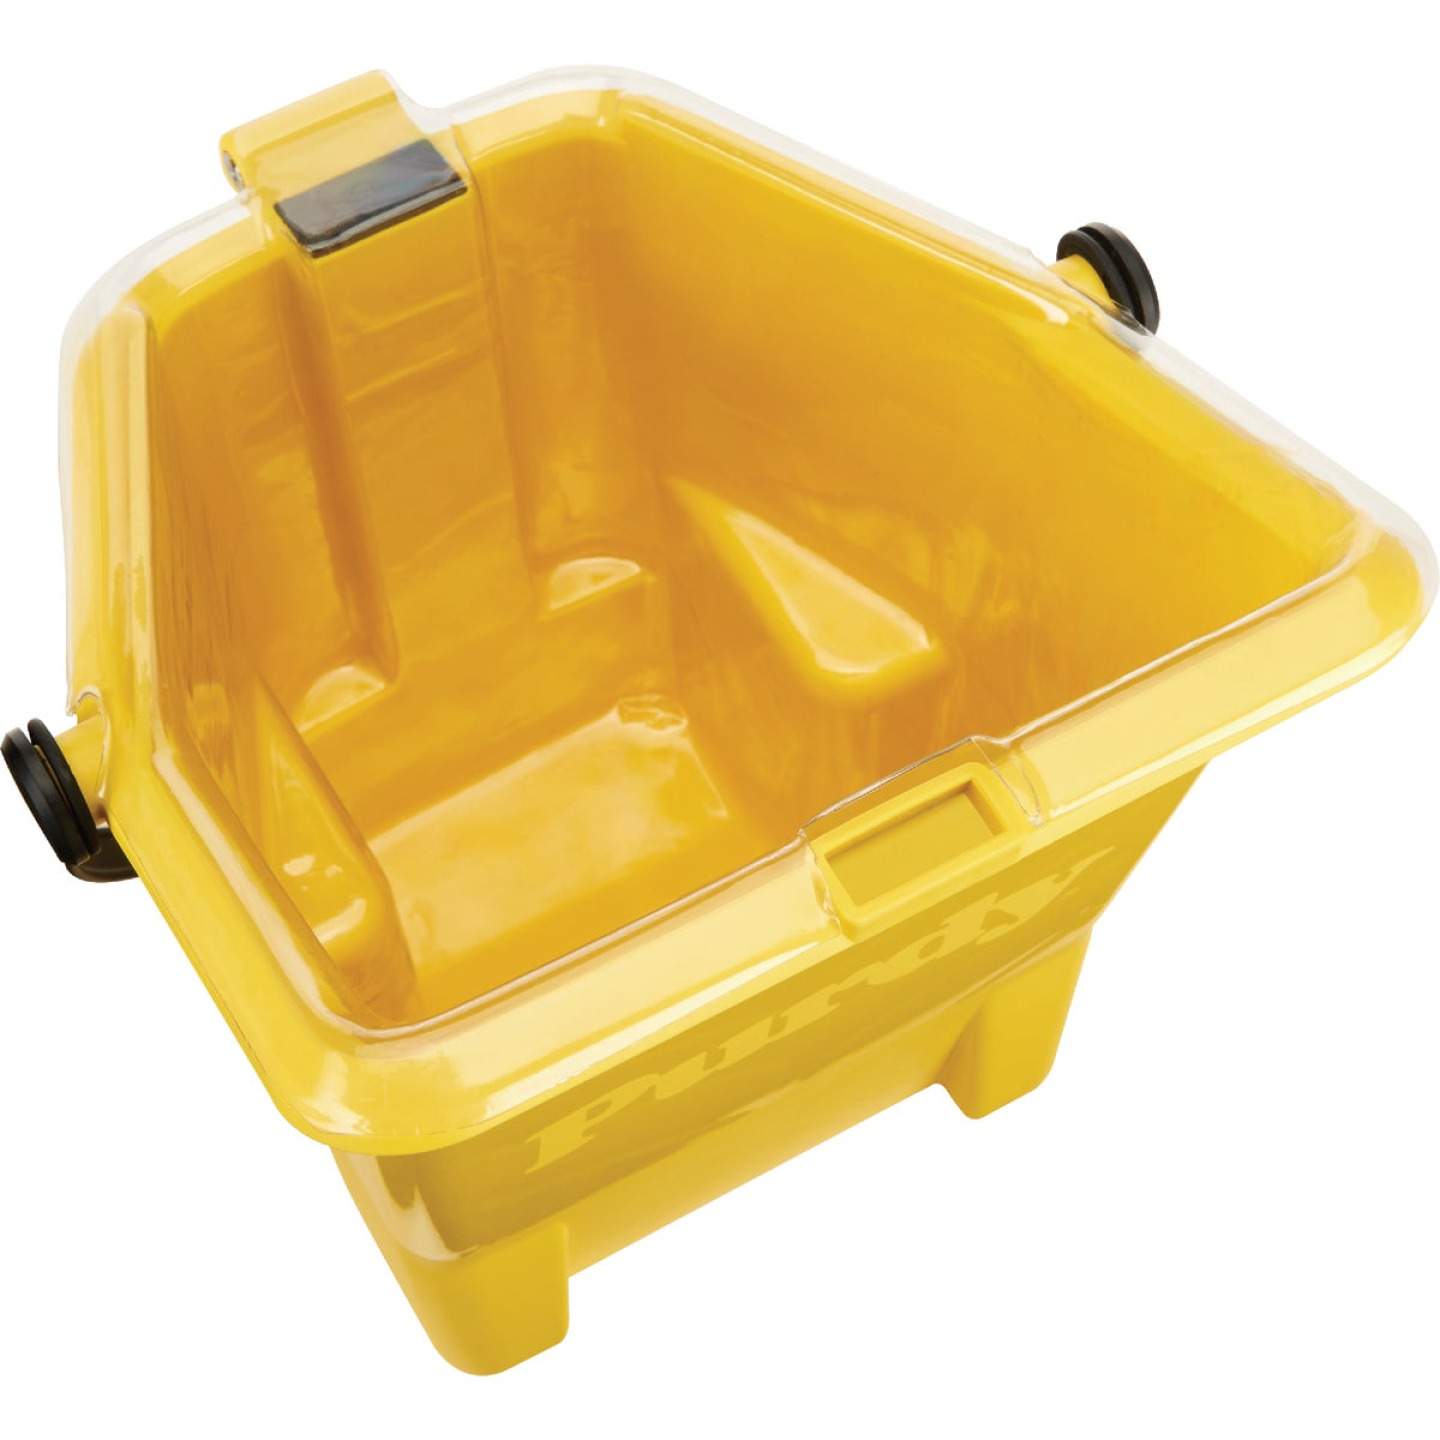 Purdy Painter's Pail Liners (3-Count) Image 3